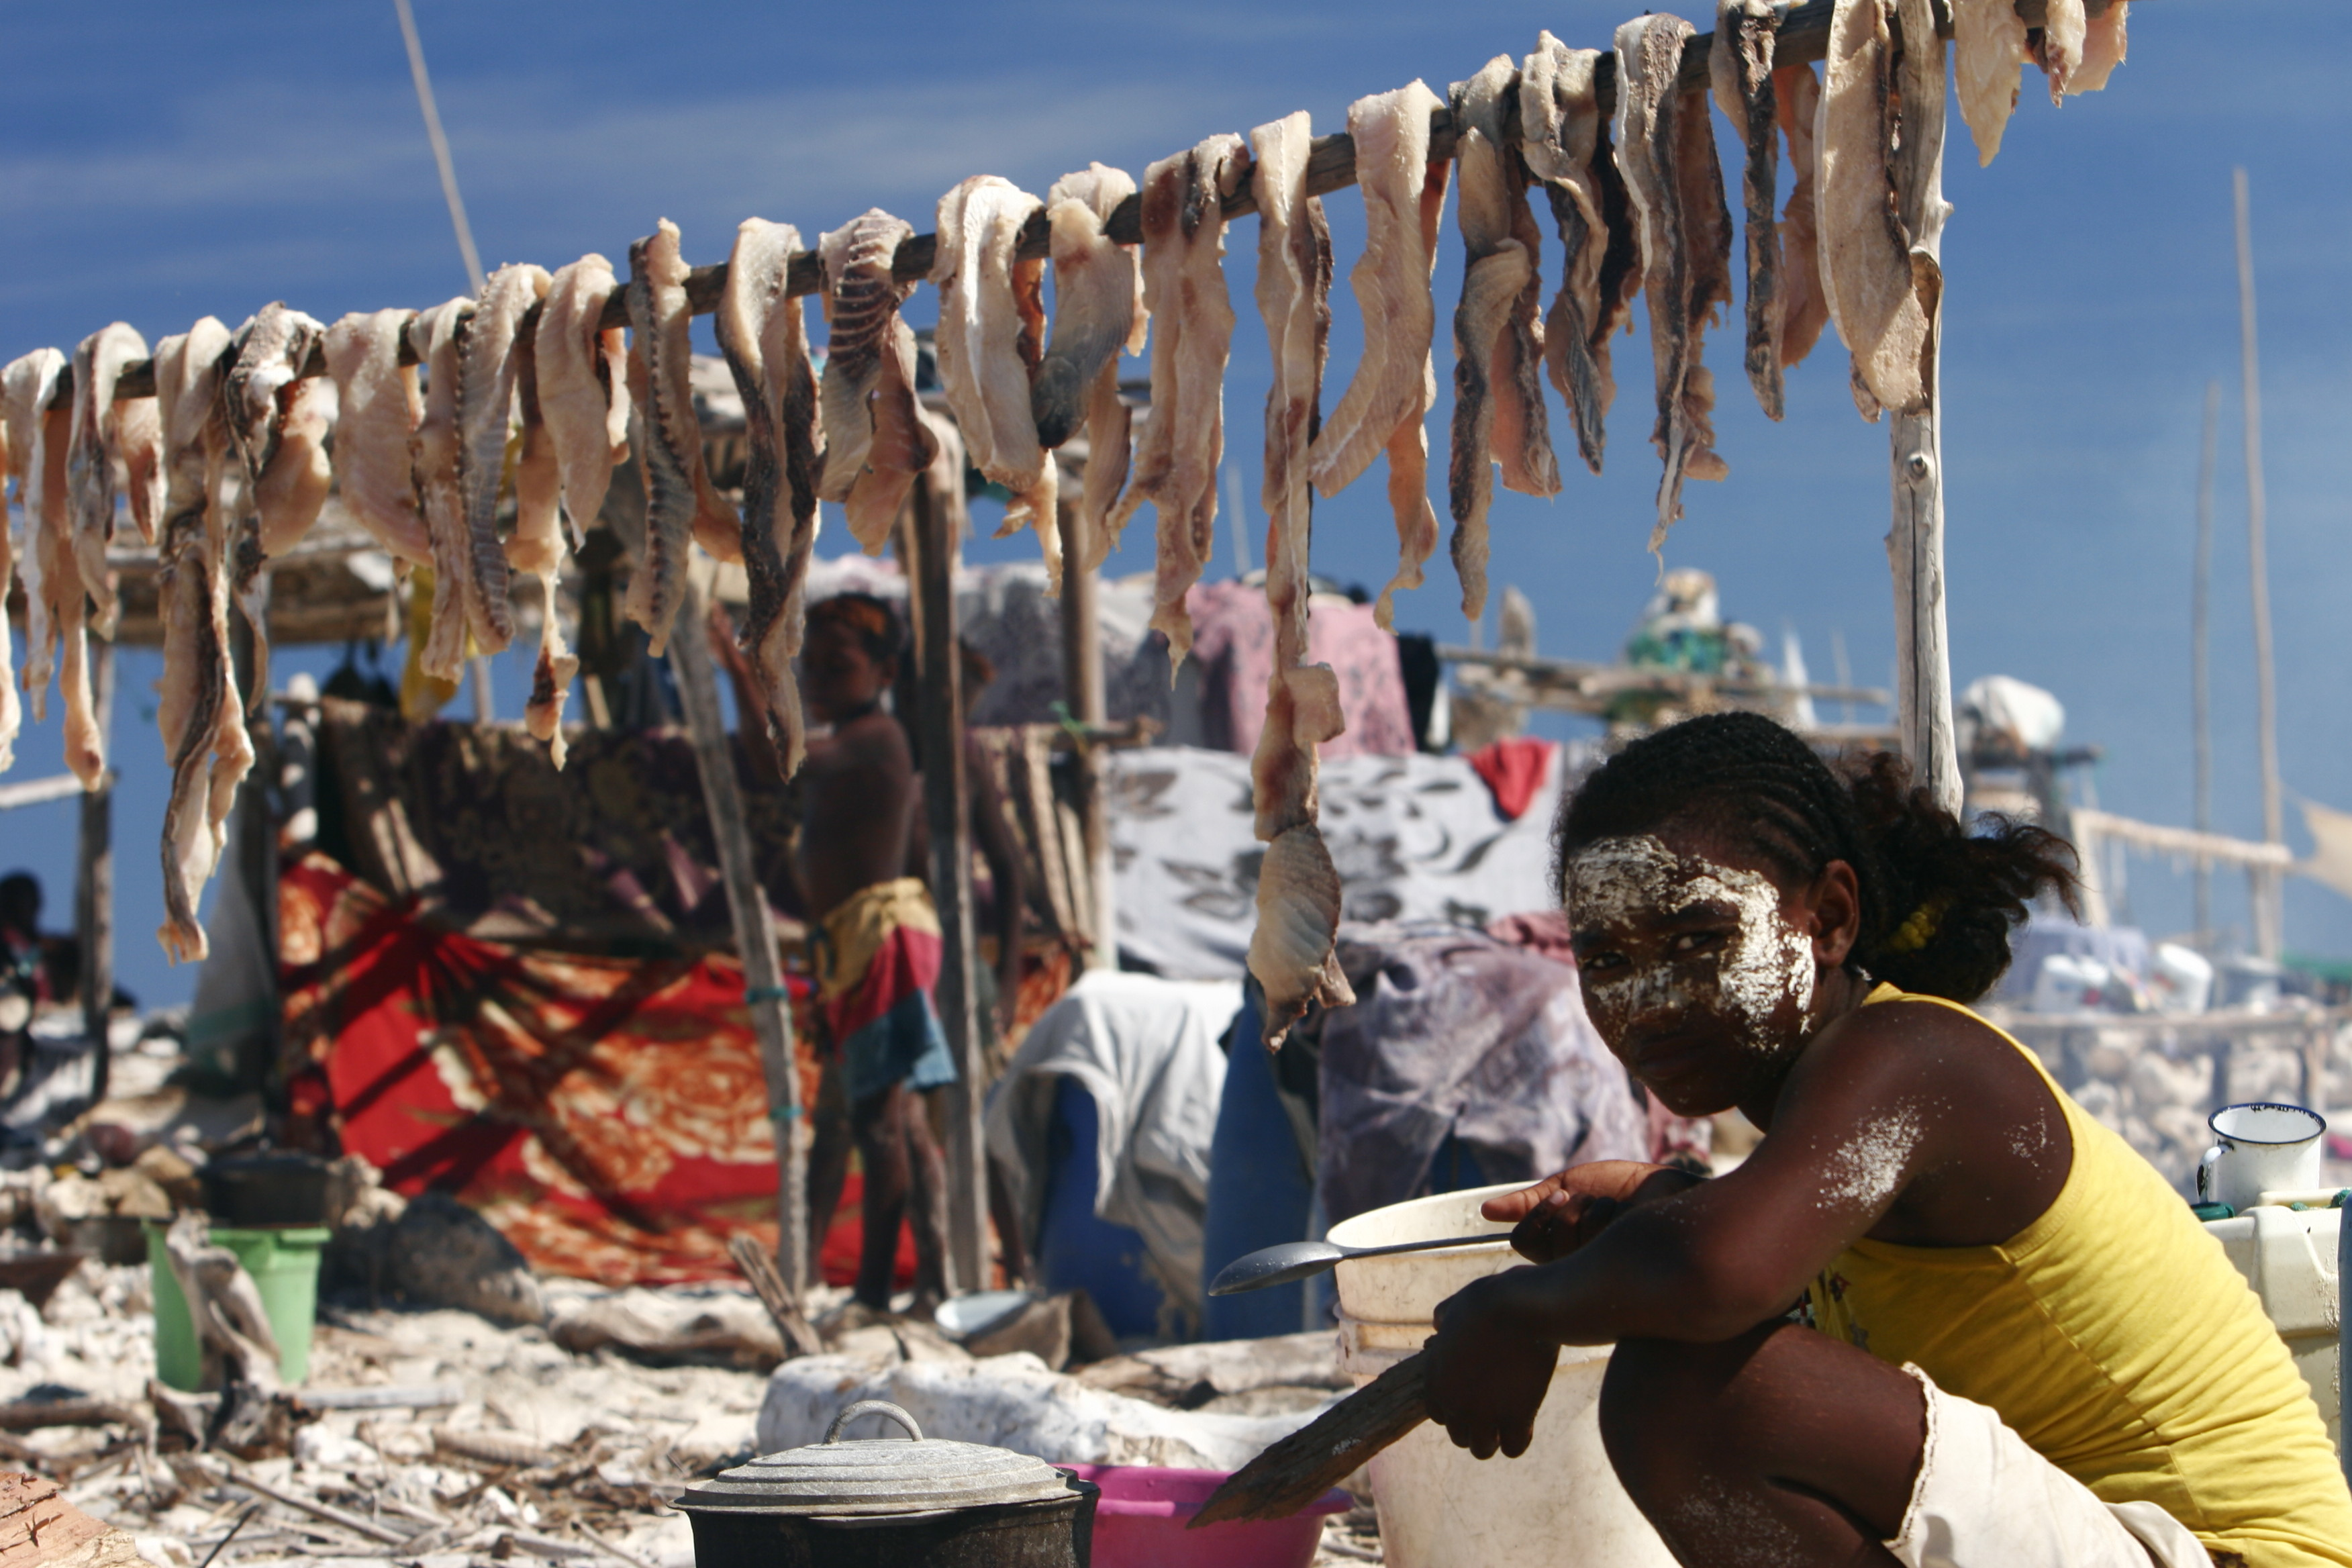 A woman prepares food in her temporary home on the Barren Isles. Shark meat is drying in the background. Photo © Garth Cripps